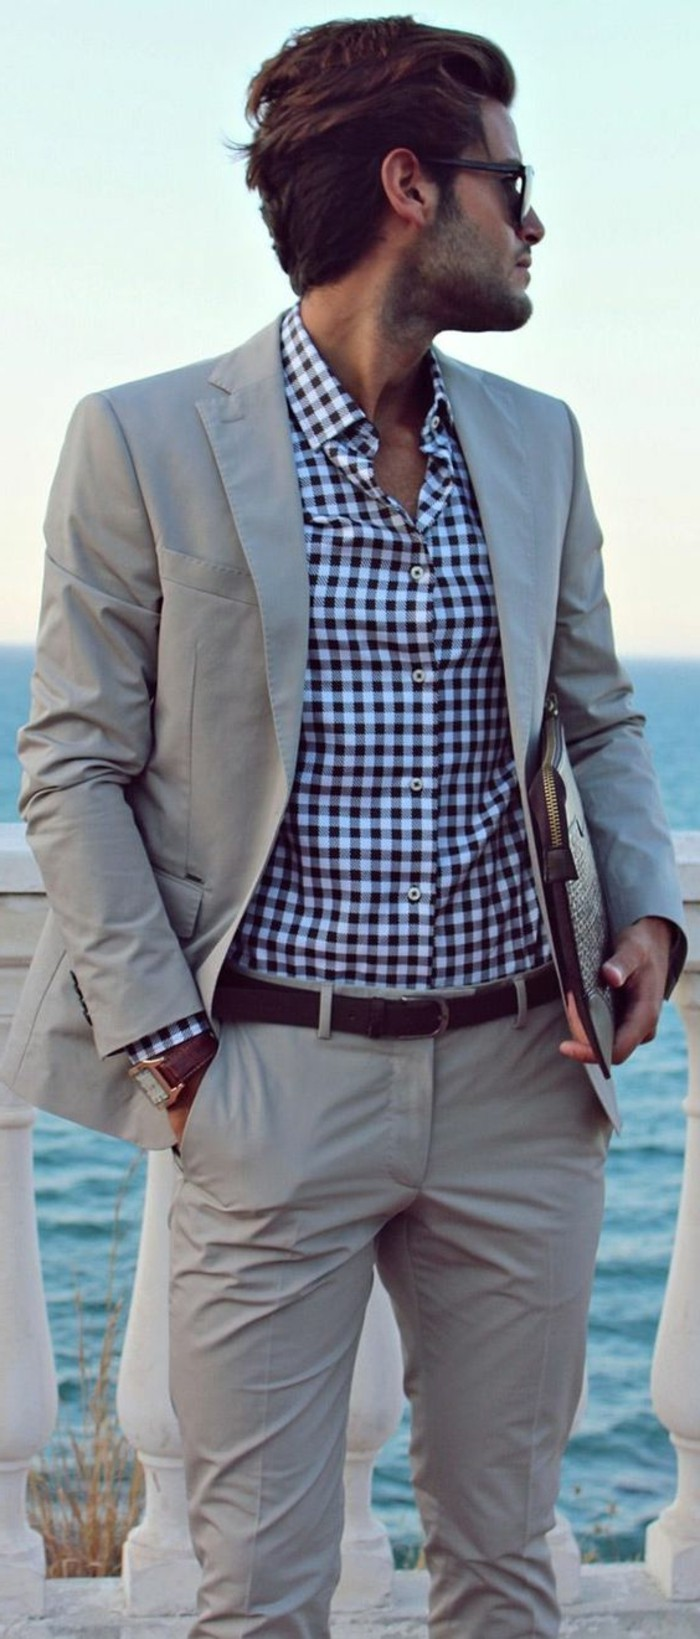 1001 Ideas For Cool Mens Summer Wedding Attire To Try